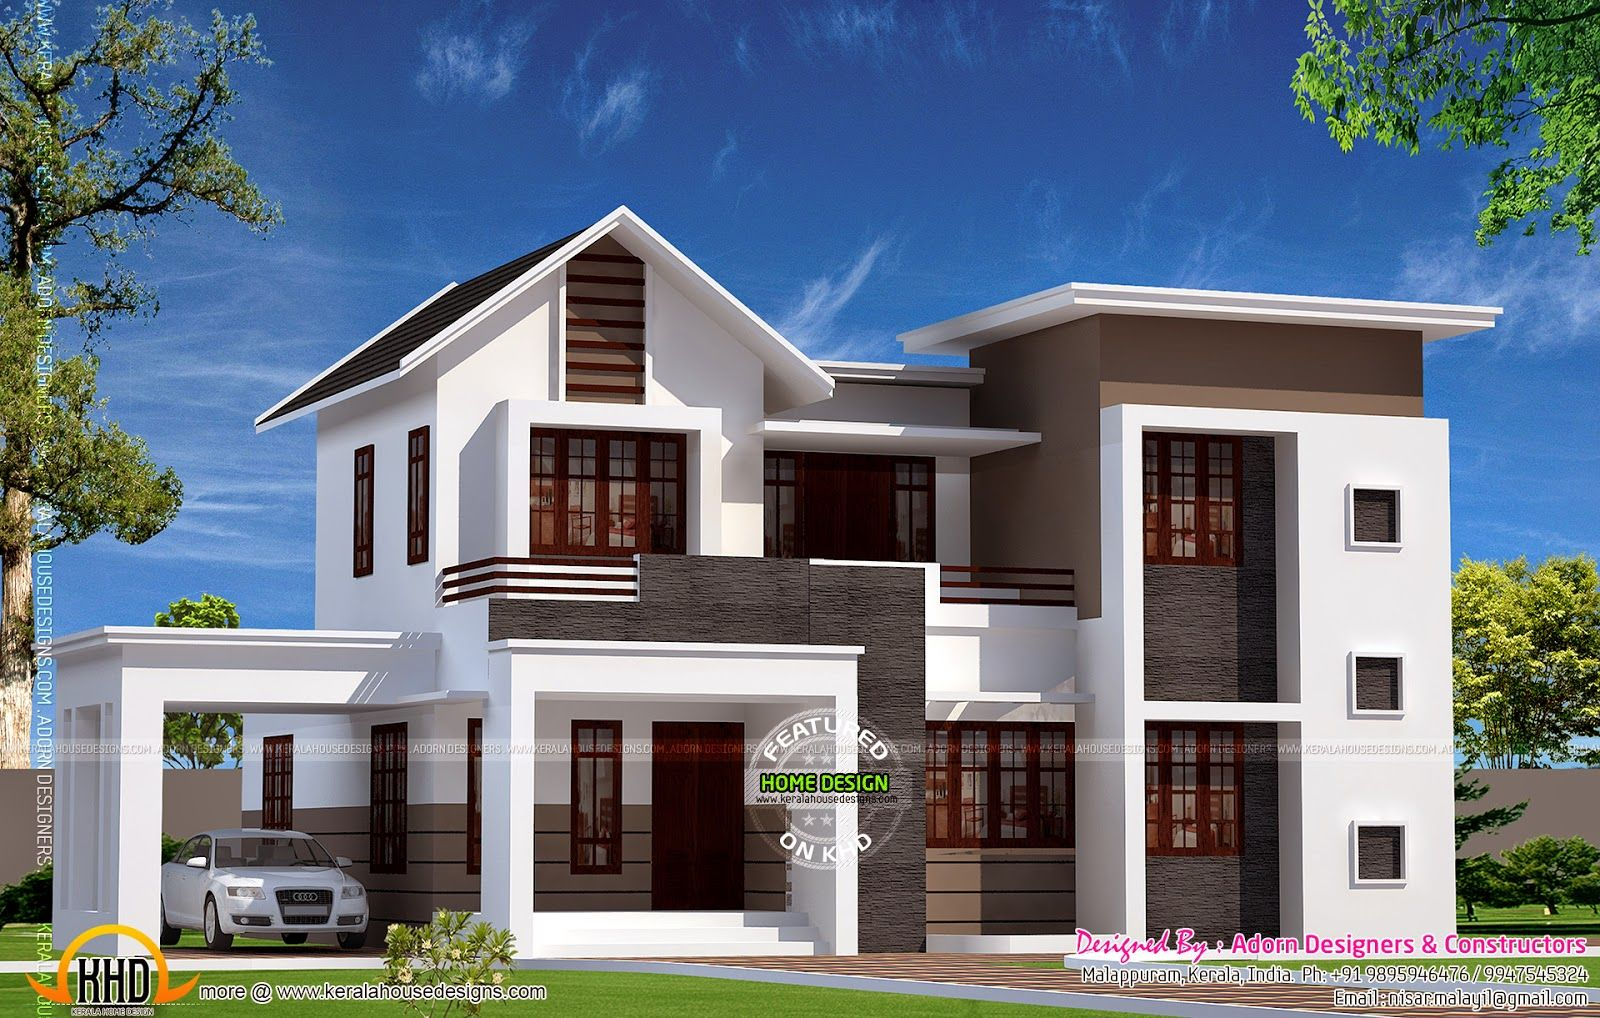 new homes styles design pjamteencom. new homes styles design